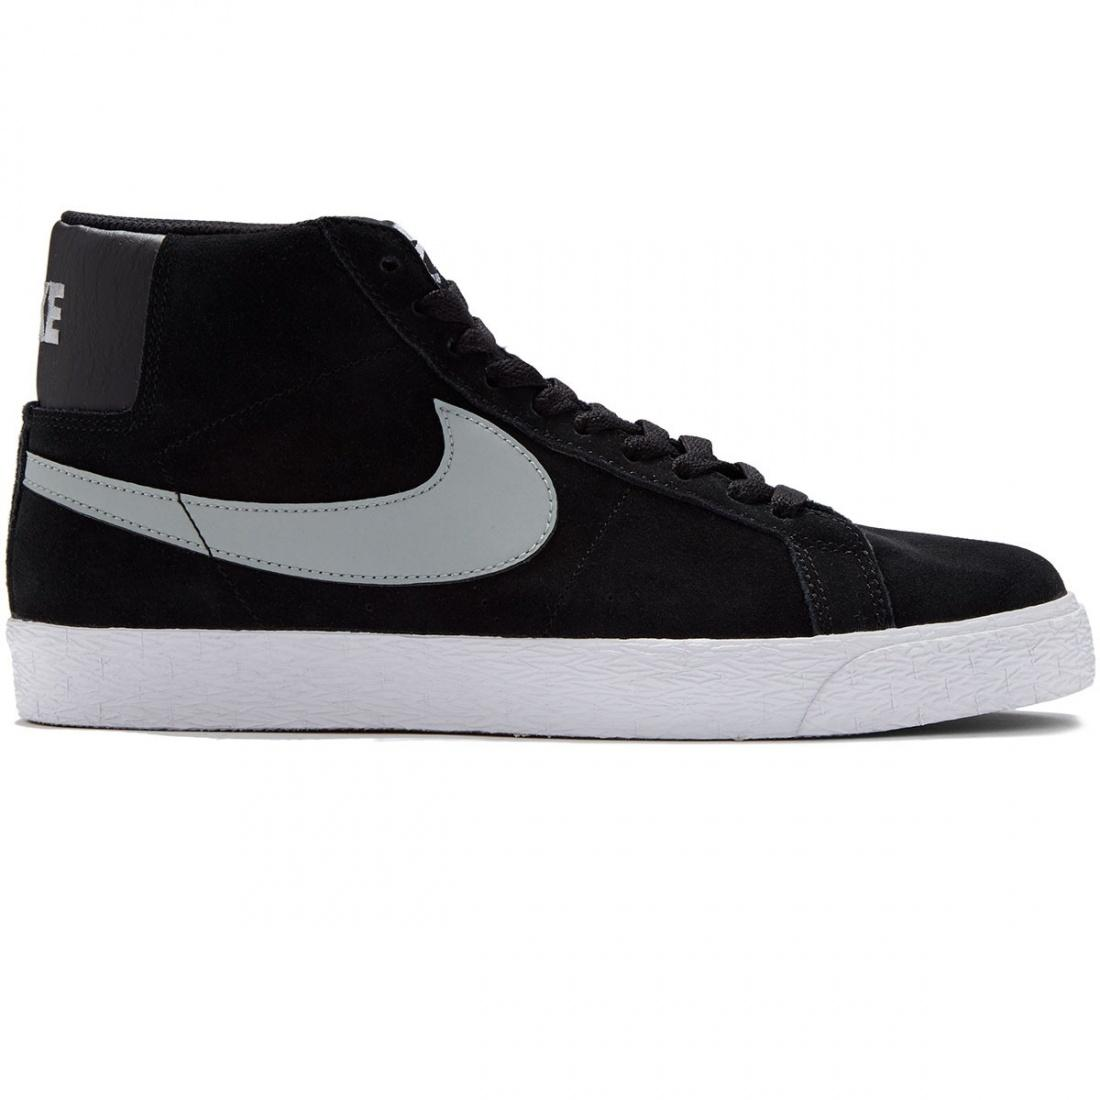 Nike SB Кеды Nike SB Blazer SB Premium Se black-base grey-white 12